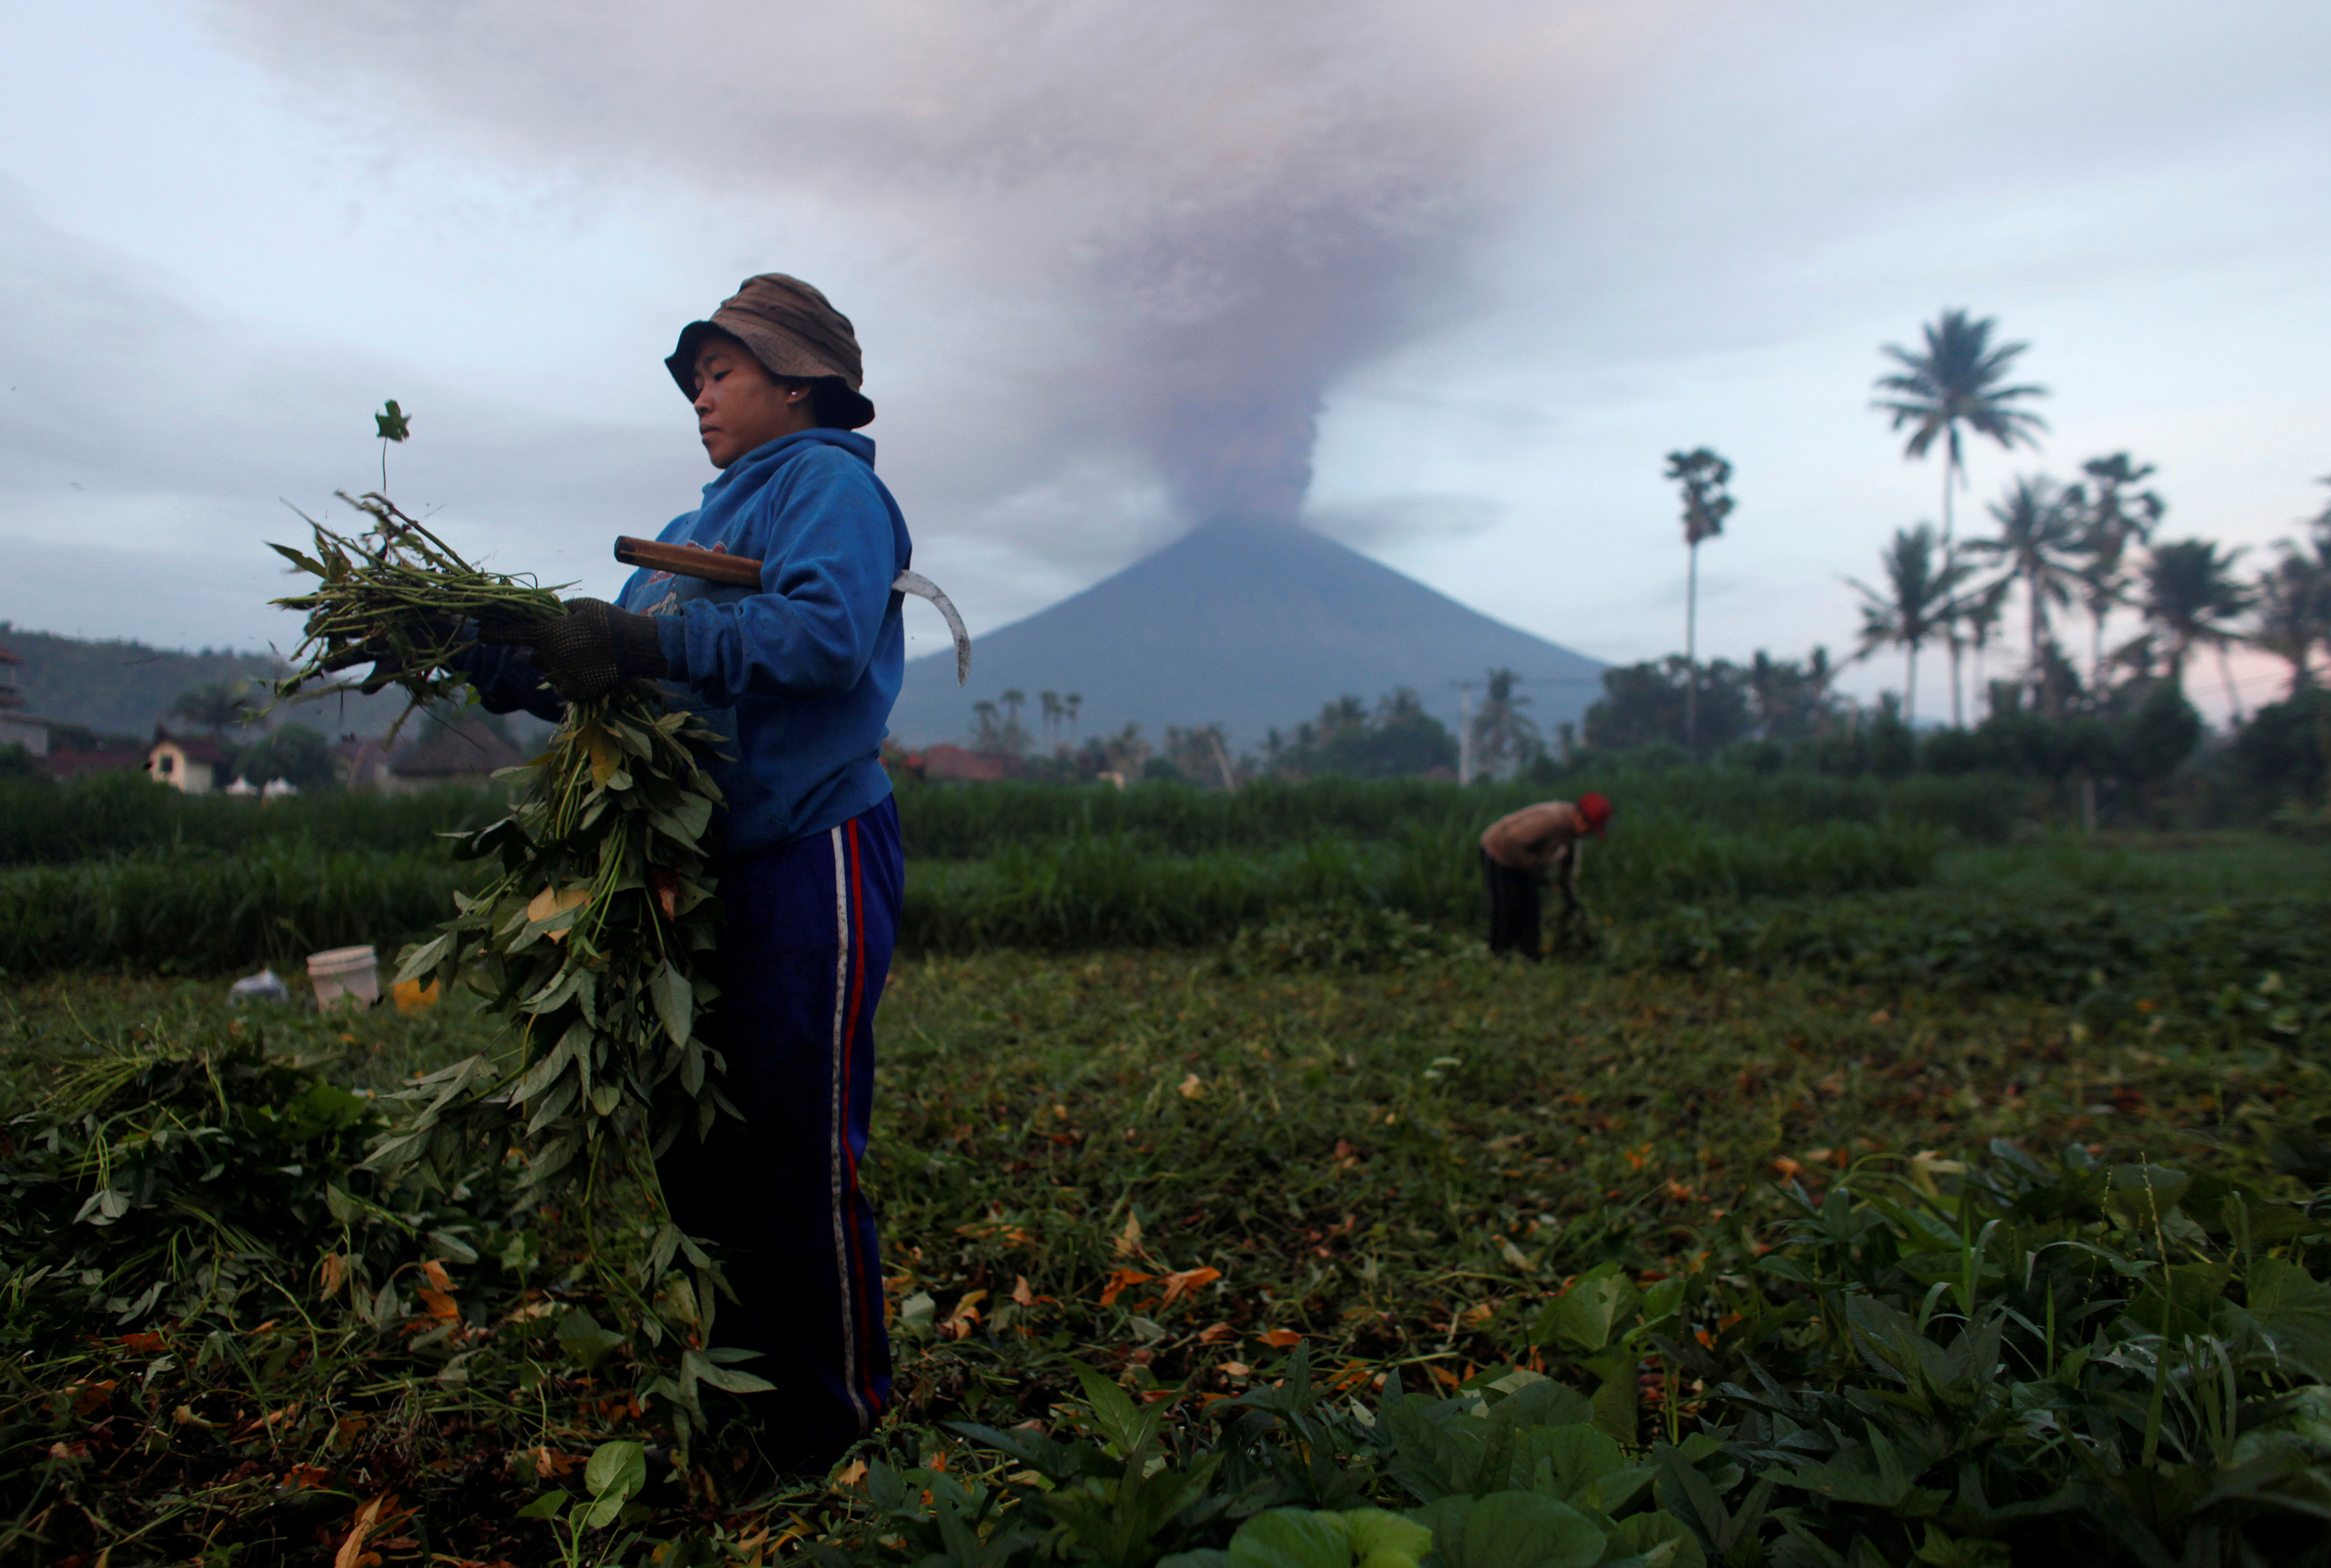 Farmers tend their crops as Mount Agung erupts in the background in Amed, Karangasem Regency, Bali, Indonesia, November 27, 2017